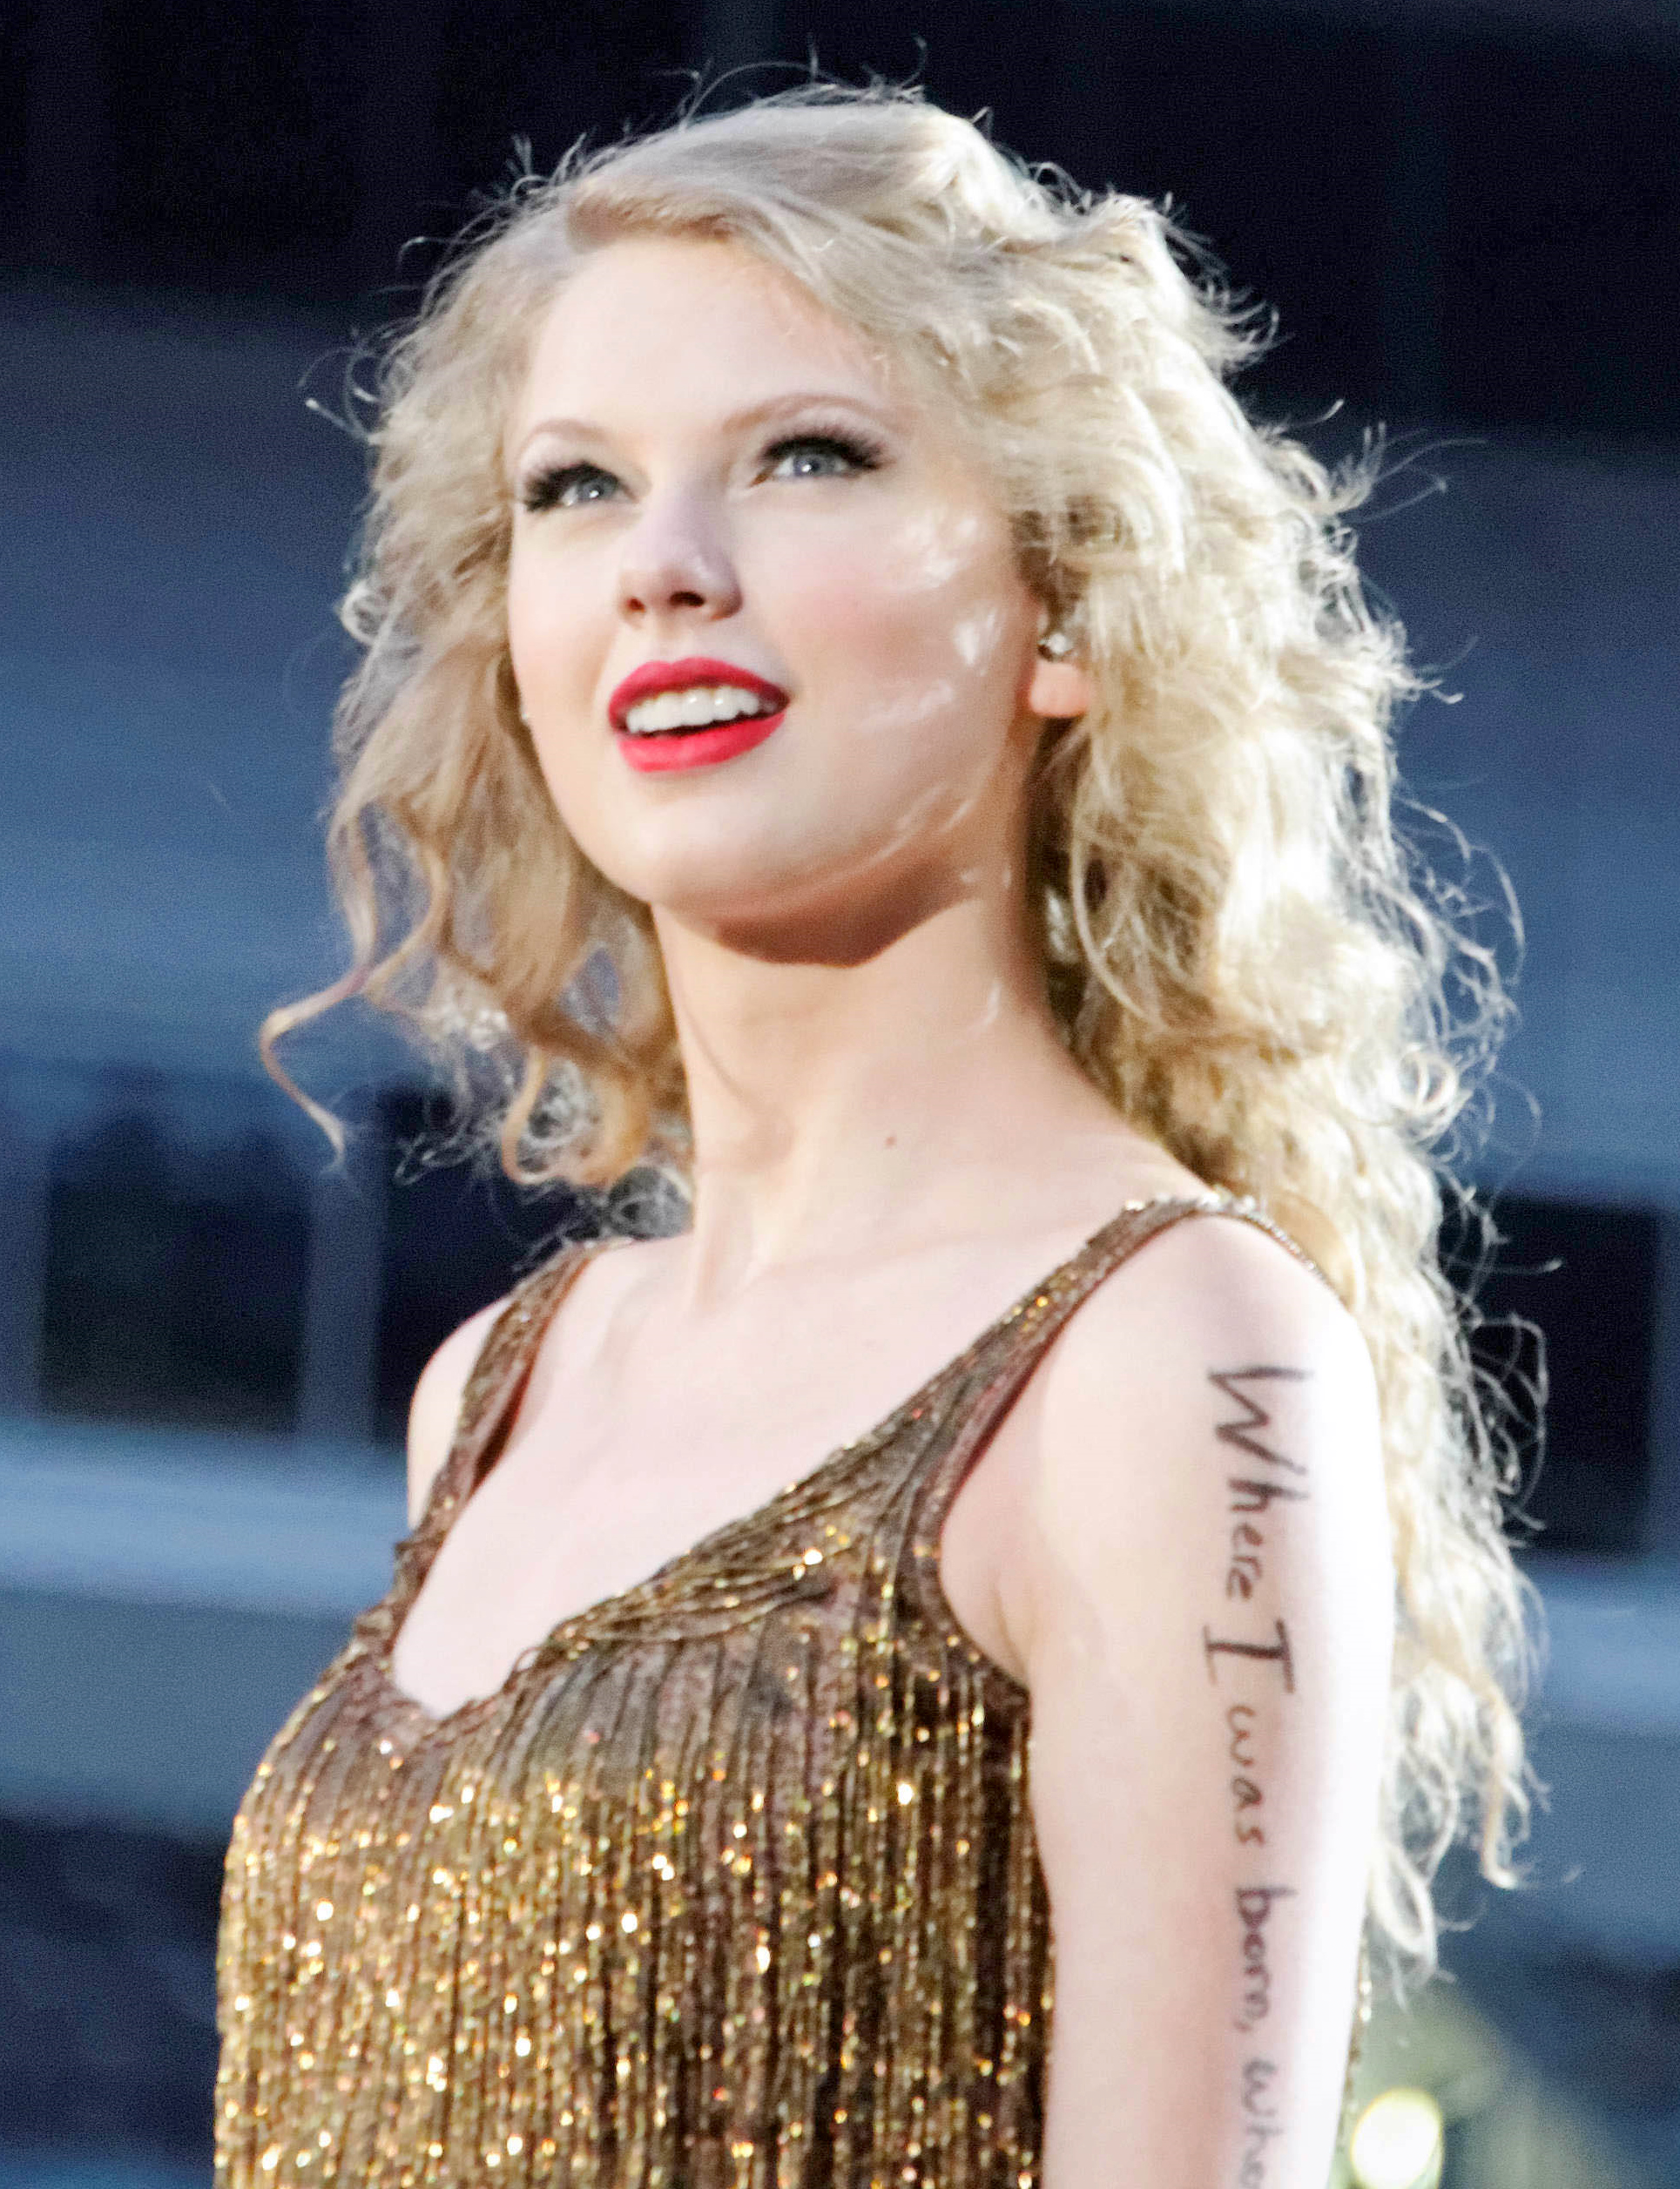 Taylor Swift Speak Now Tour picture (Taylor Swift) on Photosgood